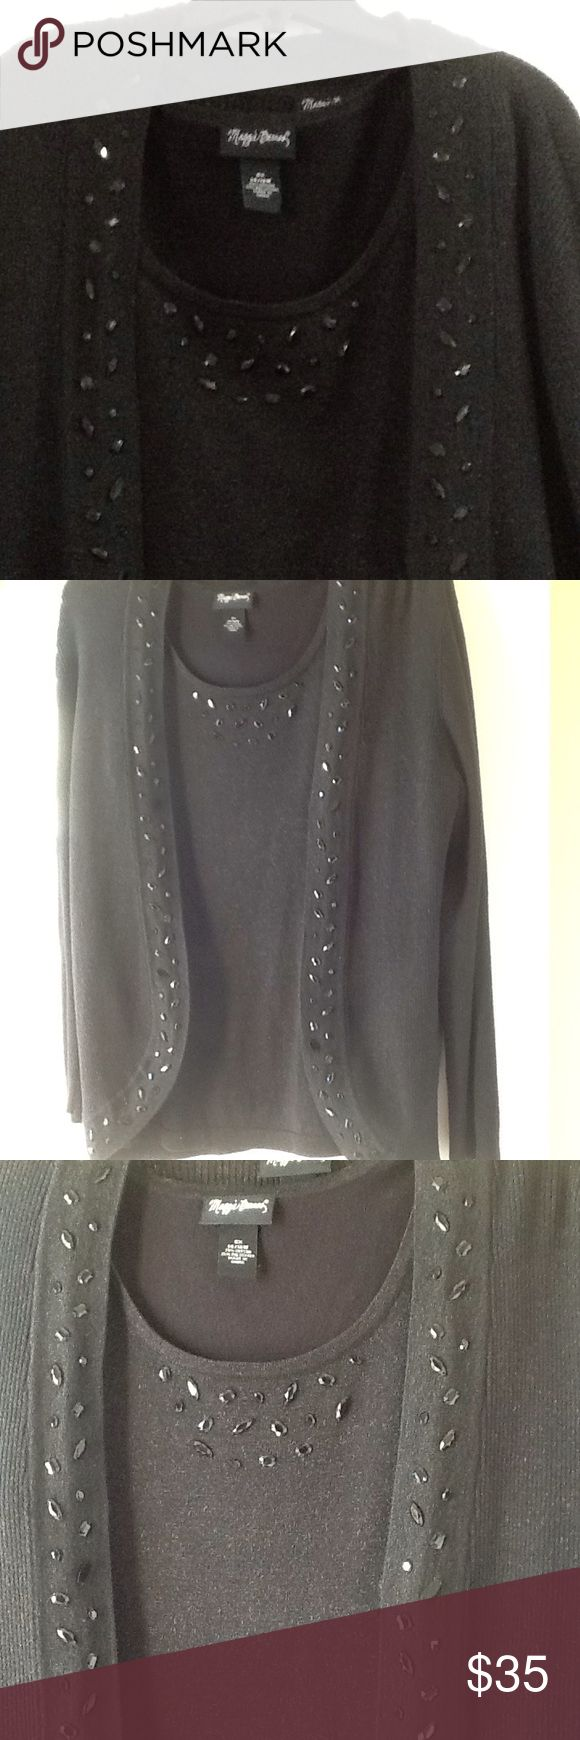 Maggie Barnes Jeweled blouse cardigan set Maggie Barns Jeweled black metallic blouse  cardigan set, worn once, 75% cotton, 25% polyester Maggie Barnes Tops